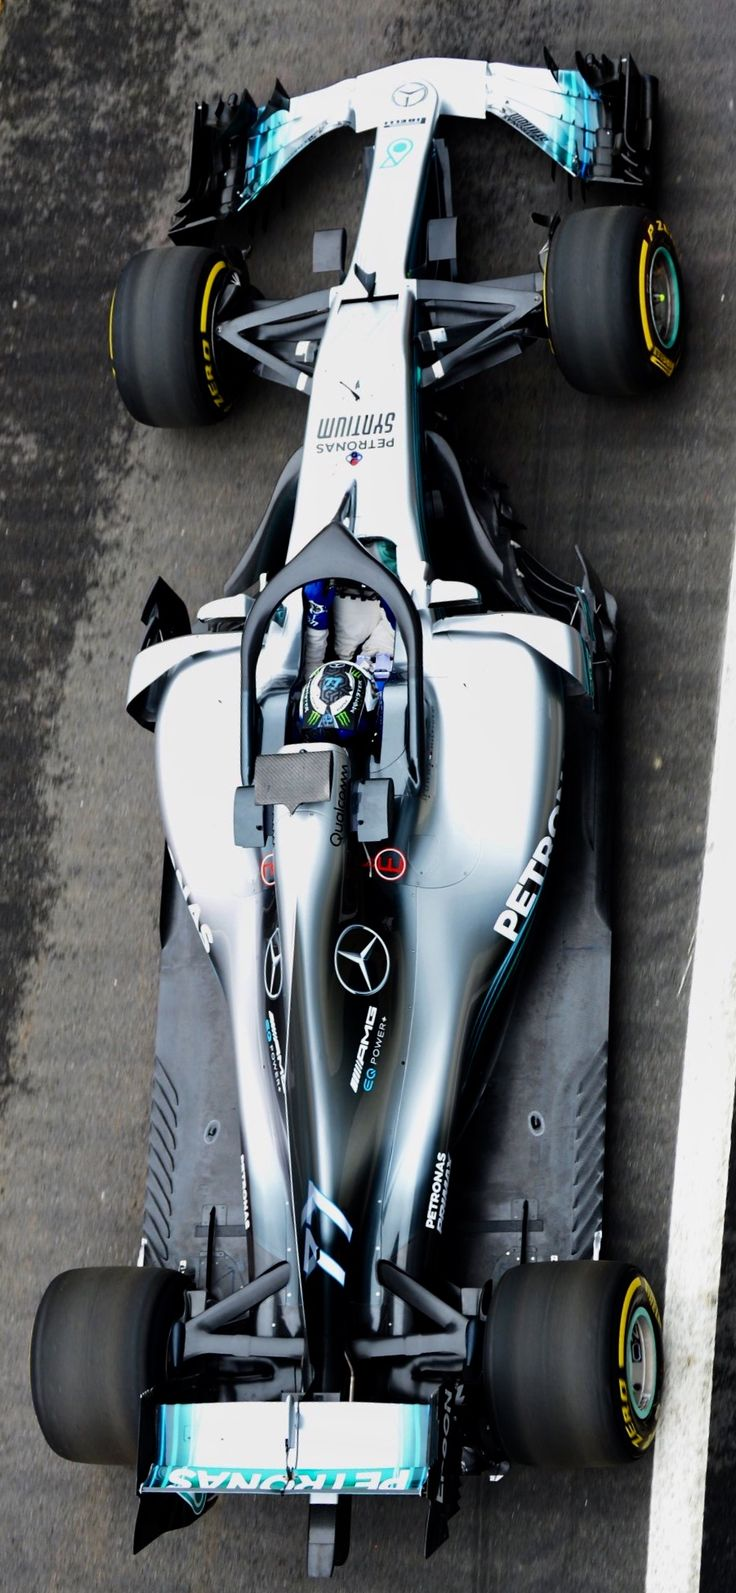 """""""This is better than last year's car in every aspect"""" LewisHamilton I guess I'll just have 2 take yer word 4 it mate."""